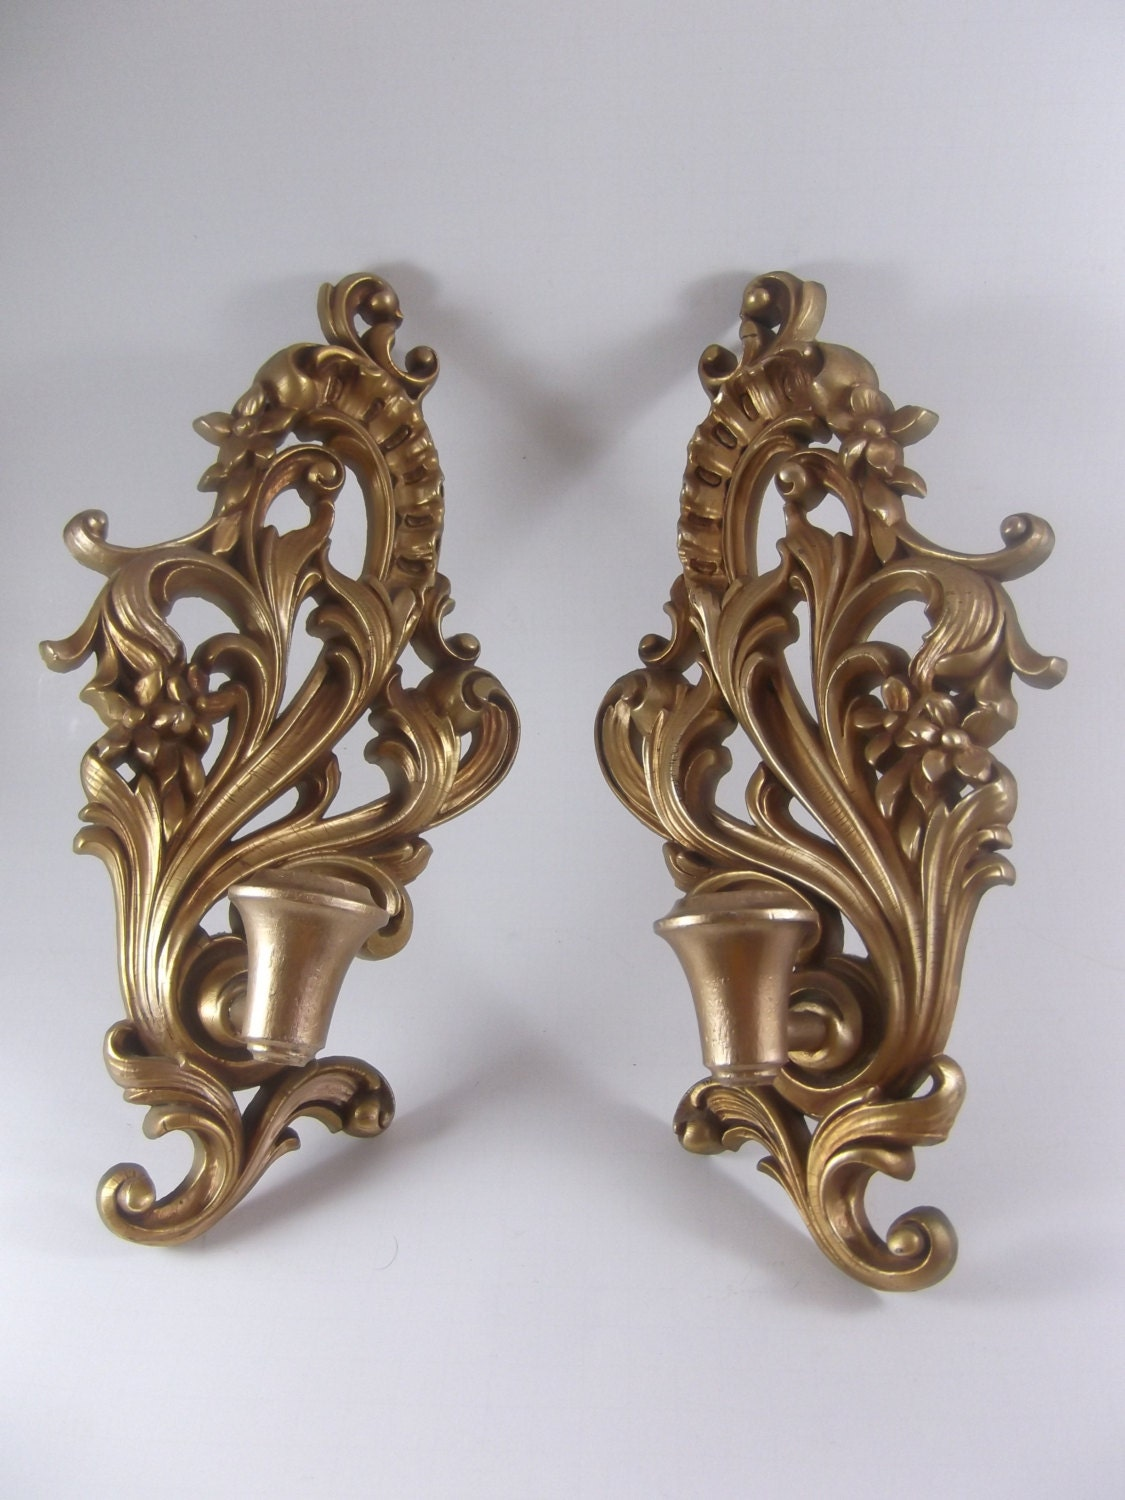 Antique Wood Wall Sconces : Wood Candle Sconce Pair Vintage Wall Mount Gilt by acornabbey